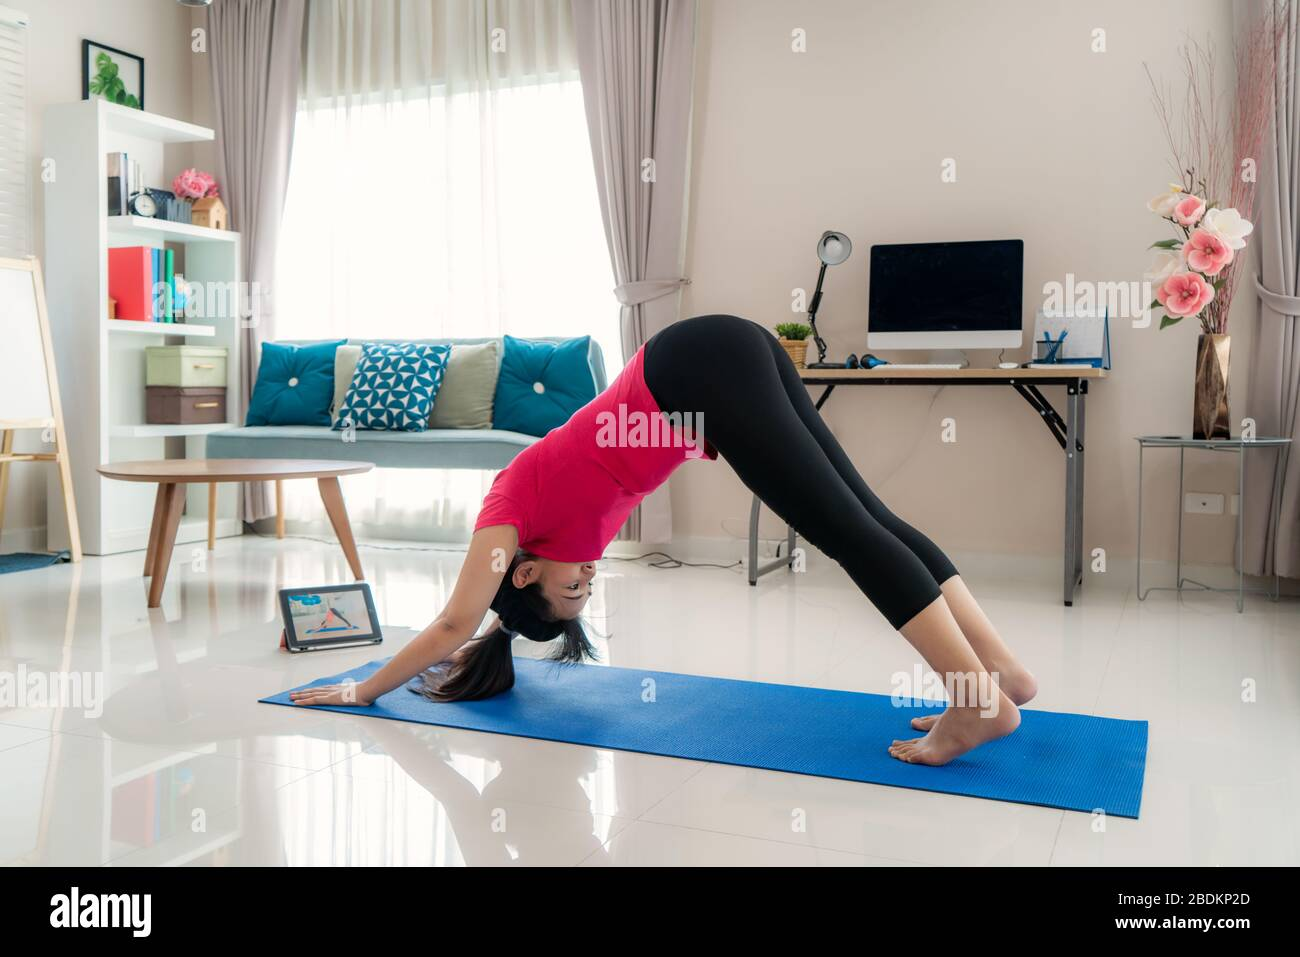 Asian woman making yoga exercise for step away from their computers to take mid-day exercise breaks via livestream videos classes on digital tablets d Stock Photo